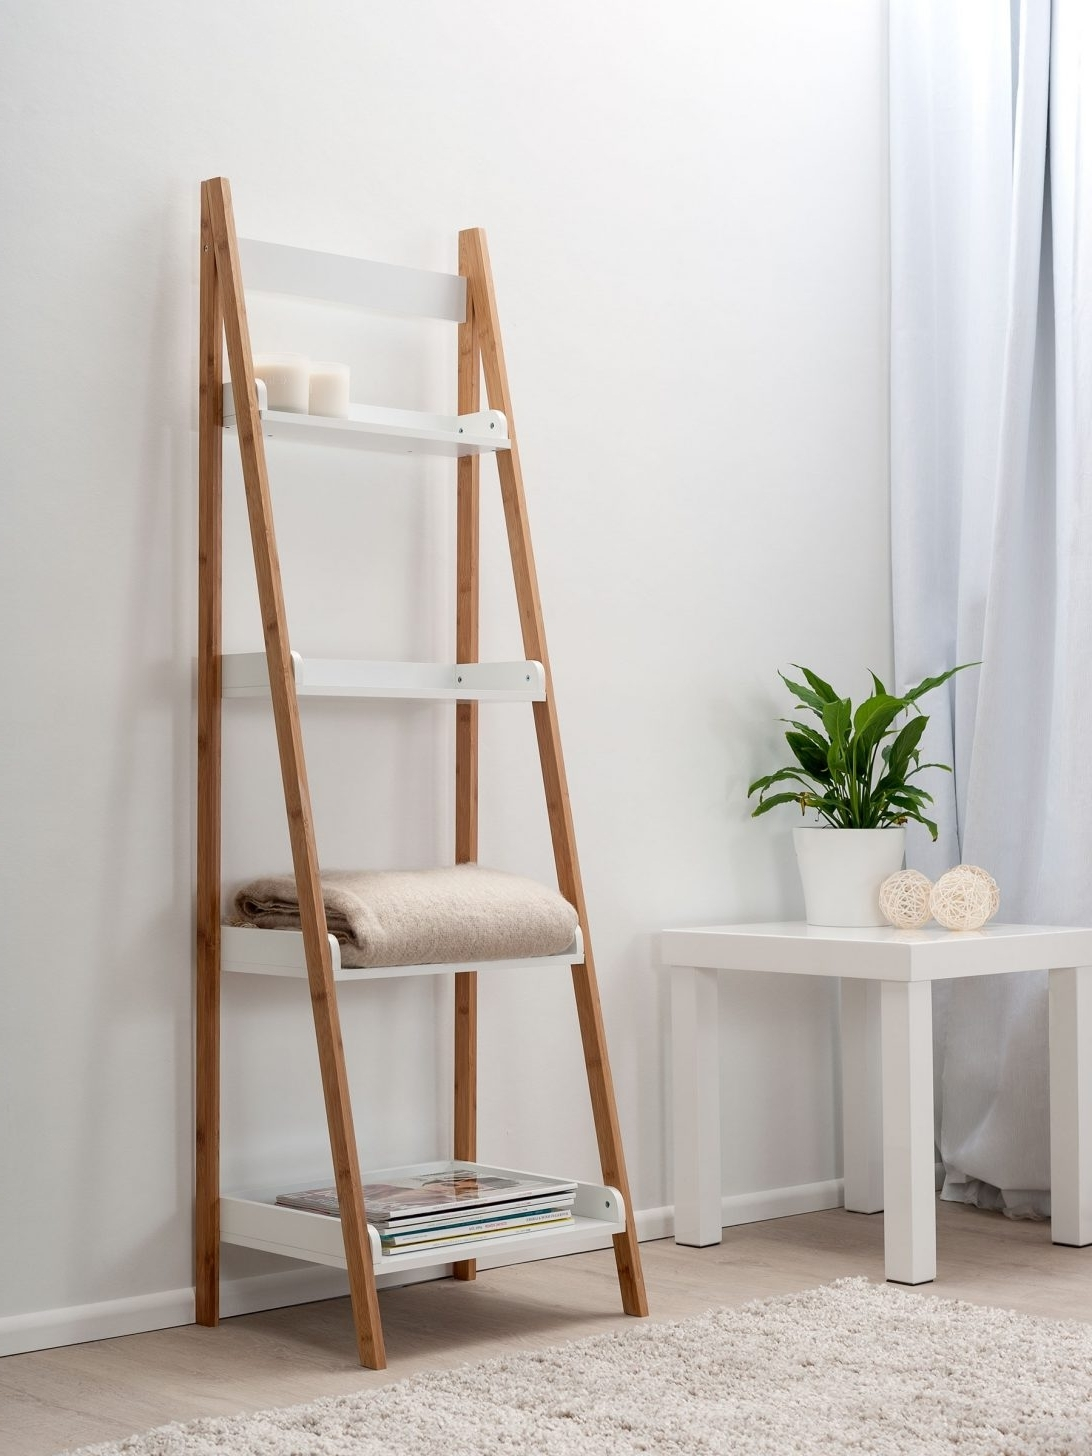 Favorite Ladder Ikea Bookcases Throughout Ladder Bookcase Drawers Amazon Shelf Plans Cappuccinoladder (View 7 of 15)